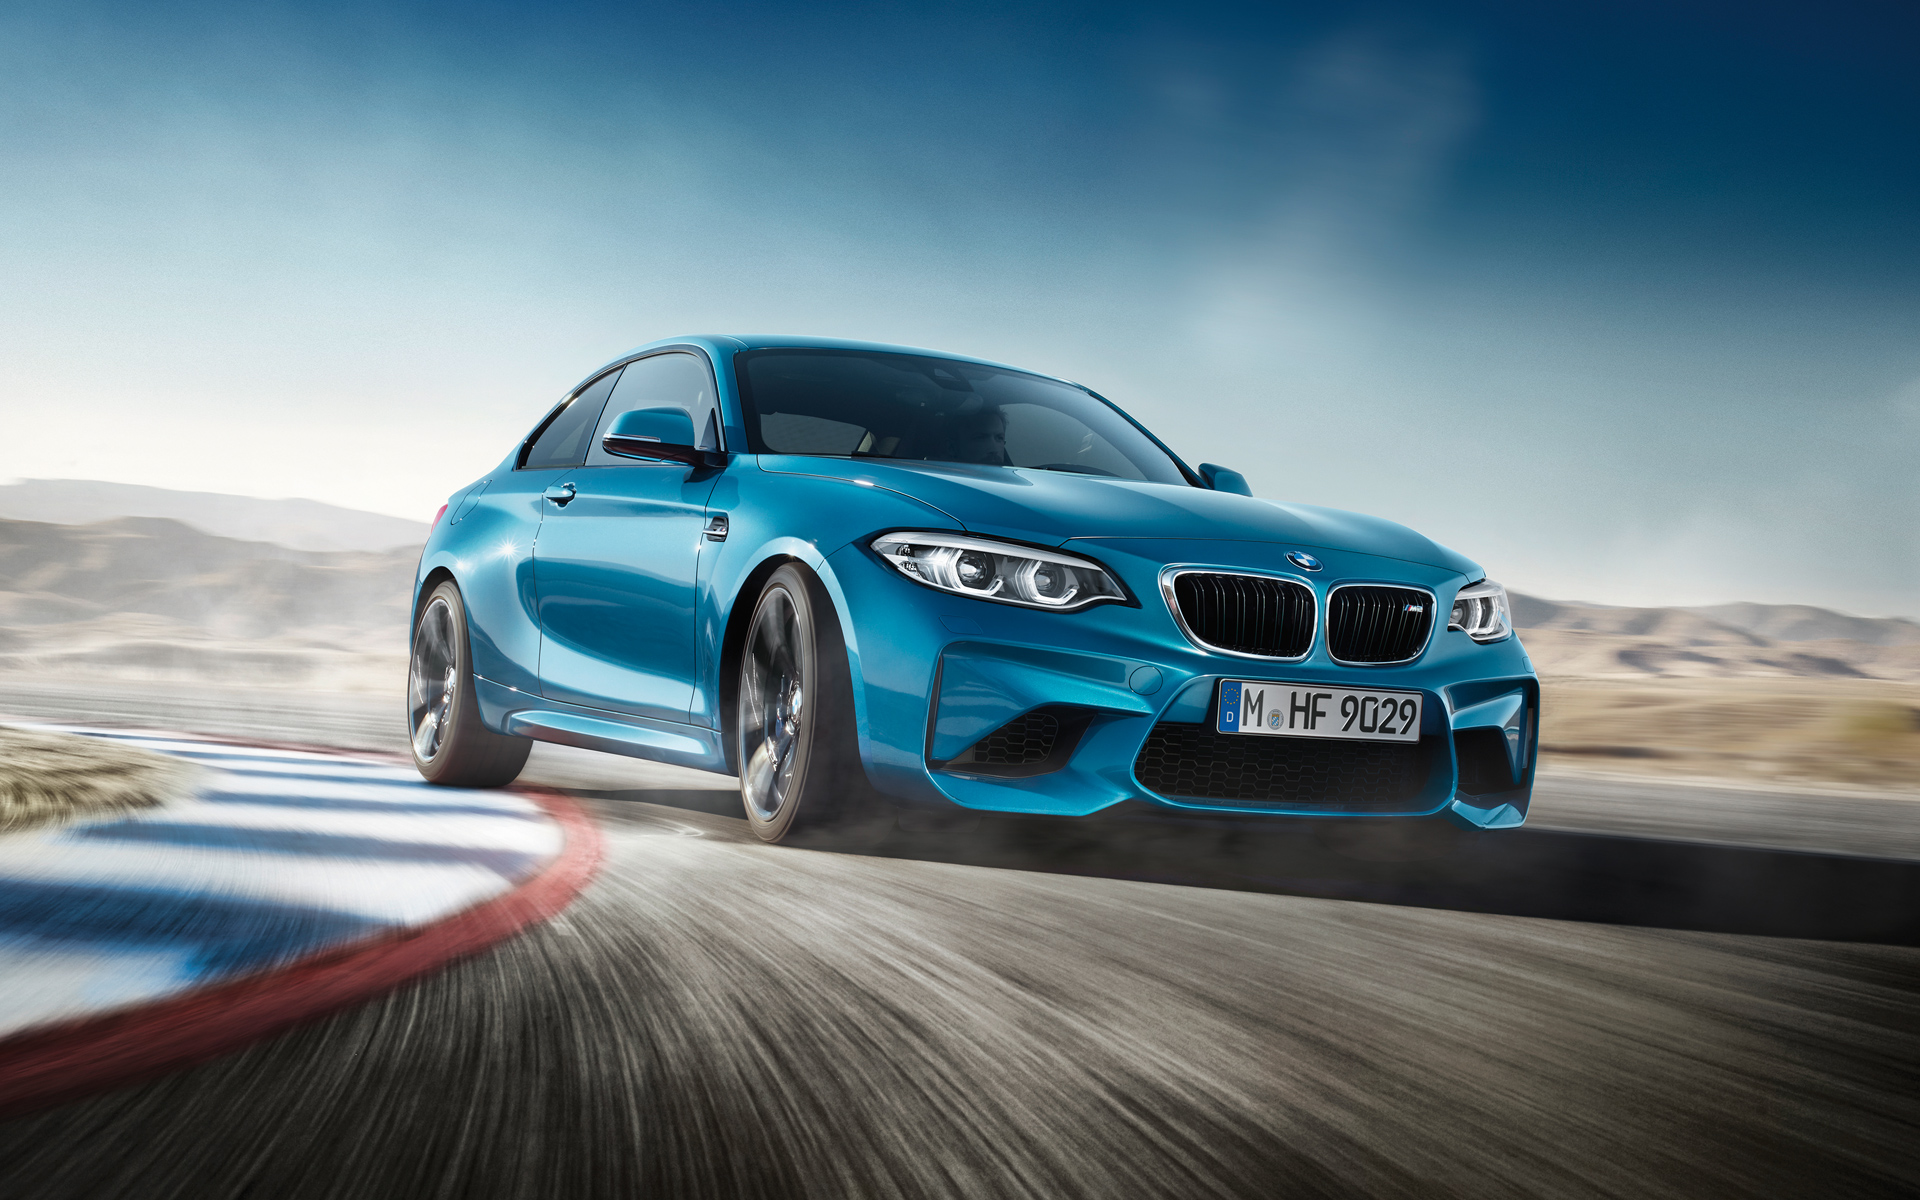 BMW M Series M2 Coupe Sports car on Road